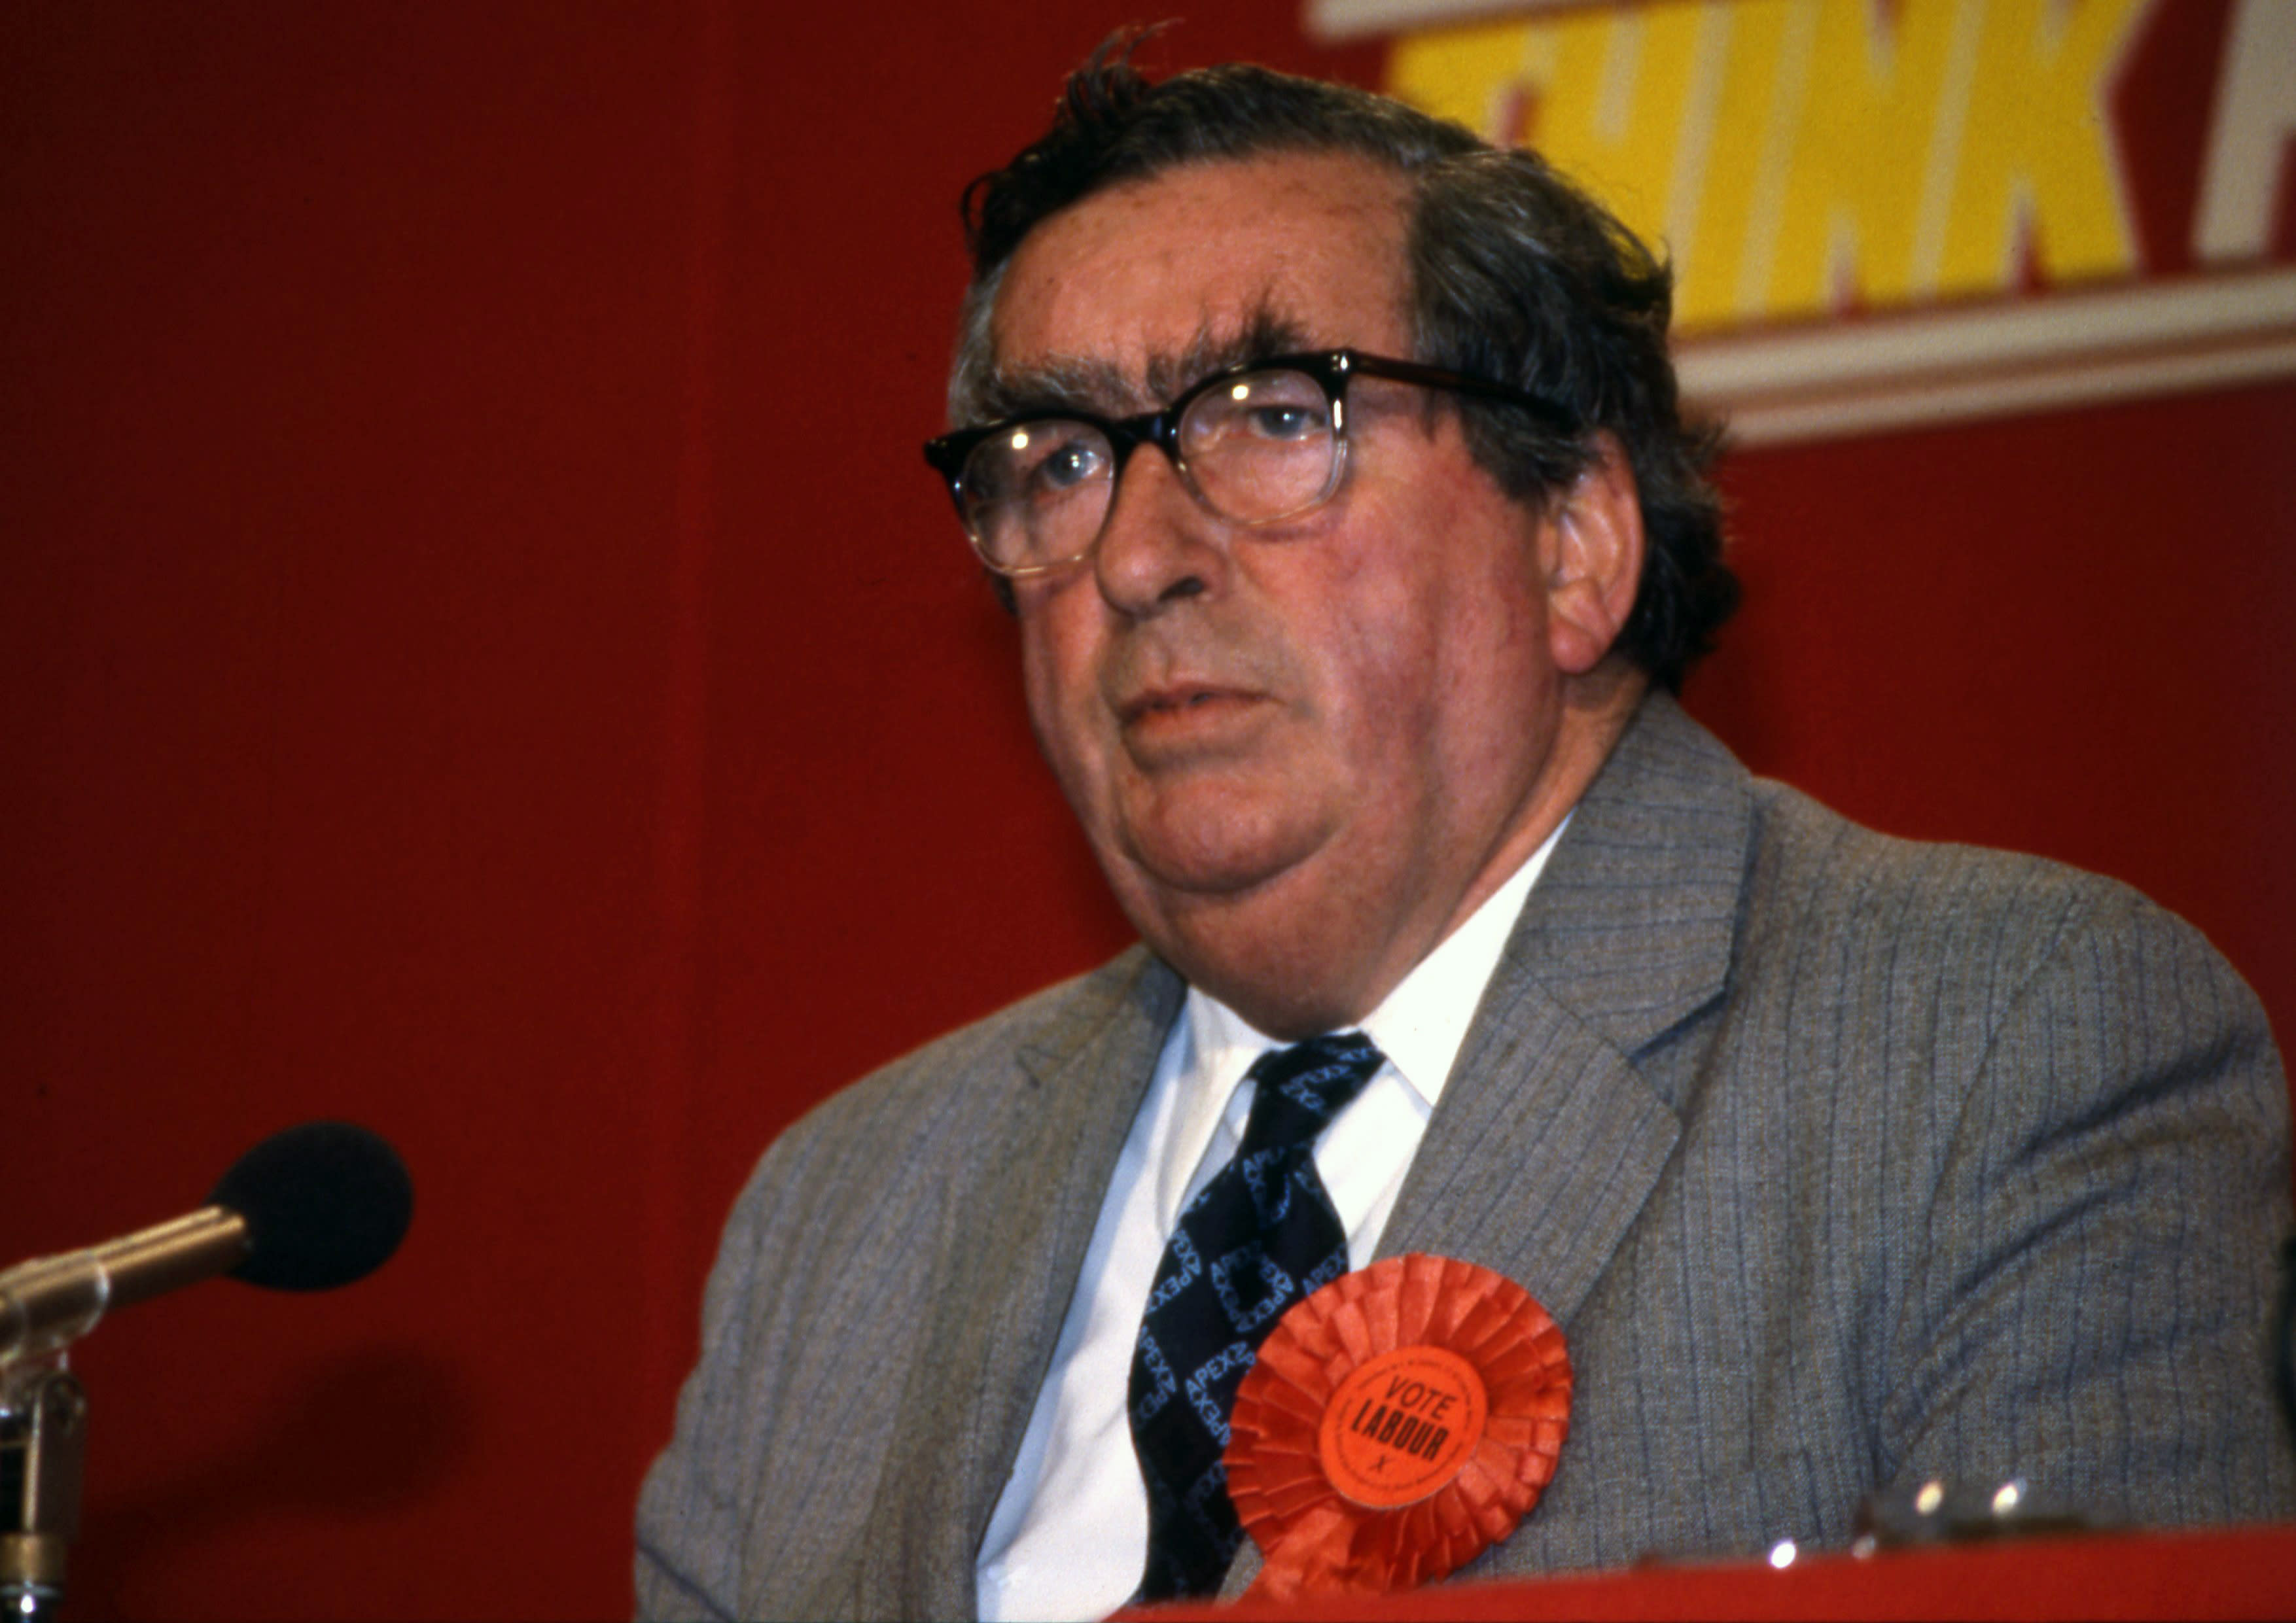 Former UK Treasury secretary Denis Healey dies at 98